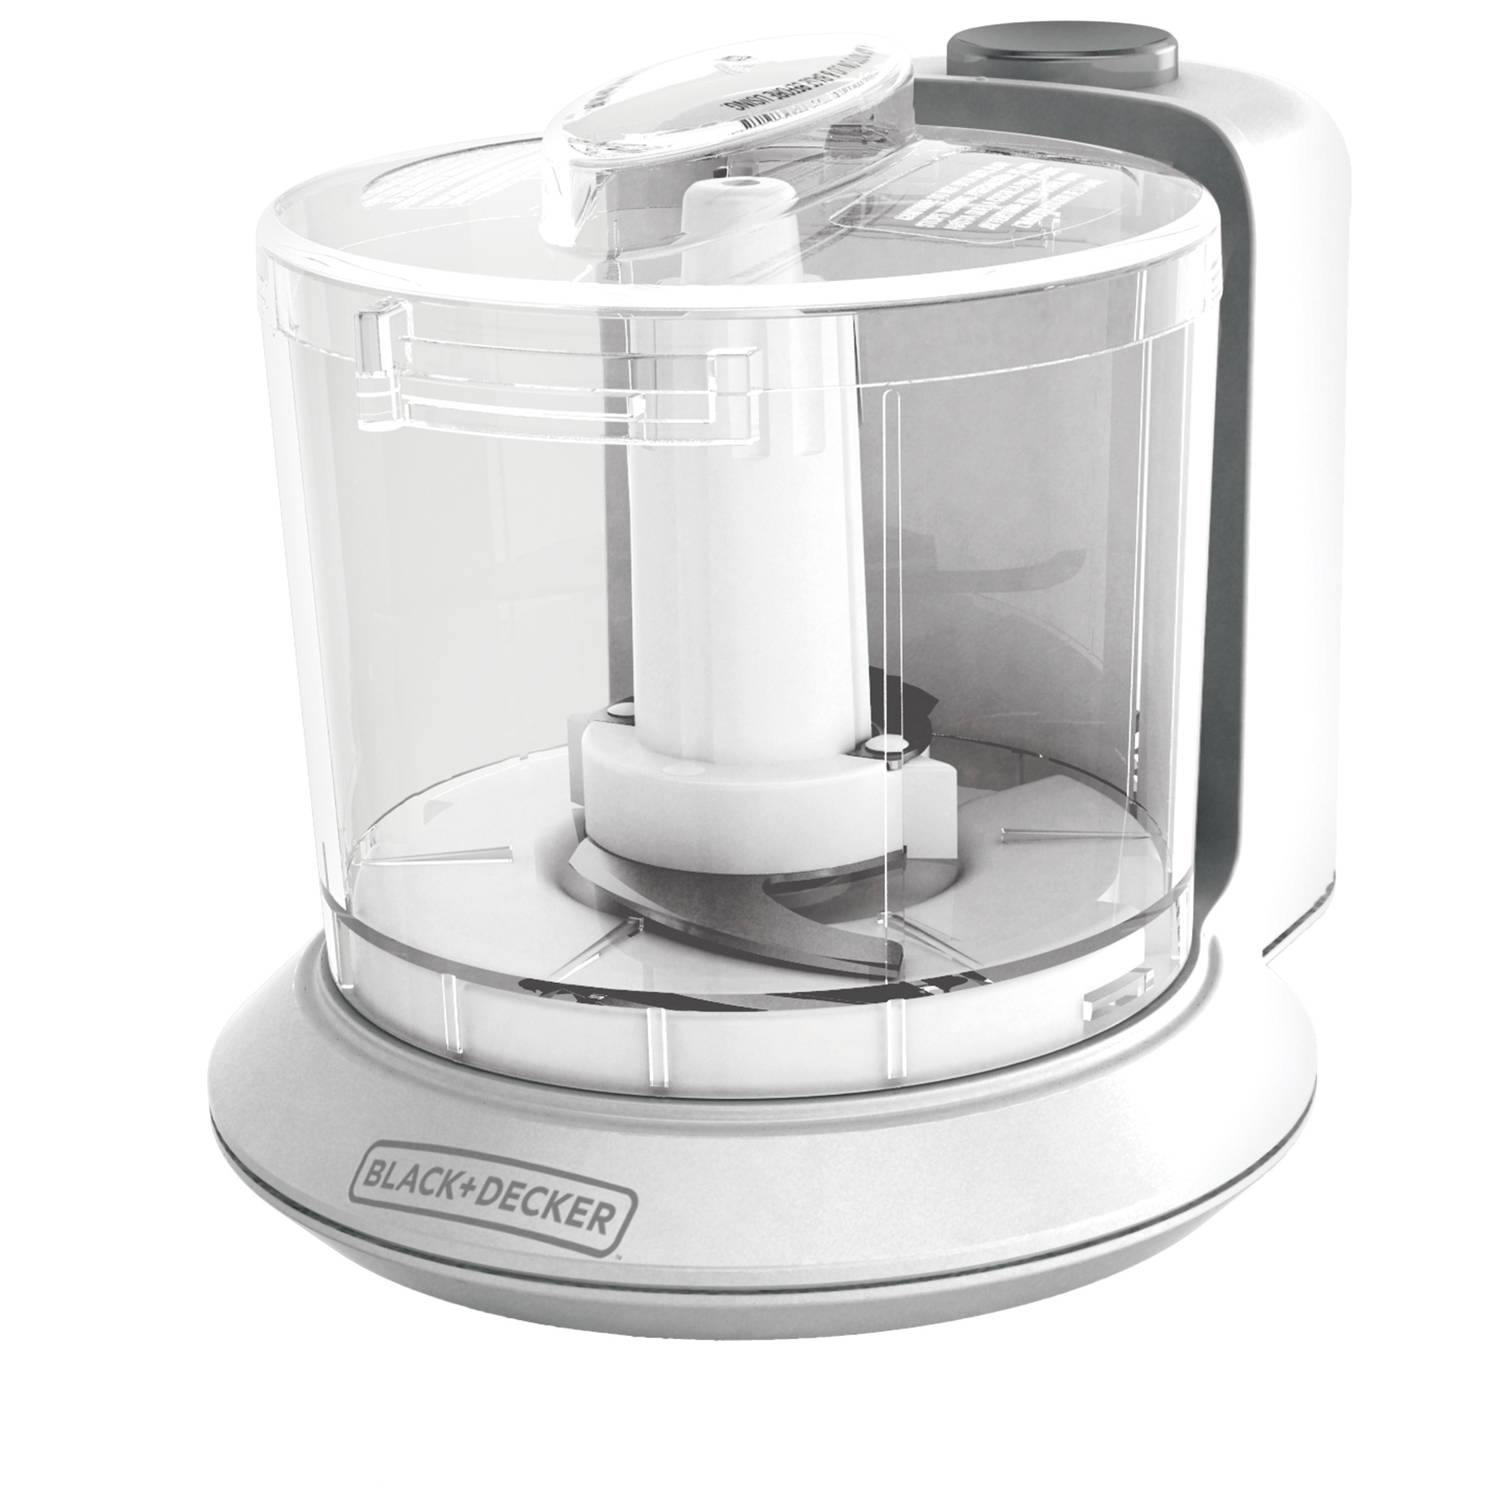 BLACK+DECKER Handy Chopper Plus - 1.5-Cup, White, HC306